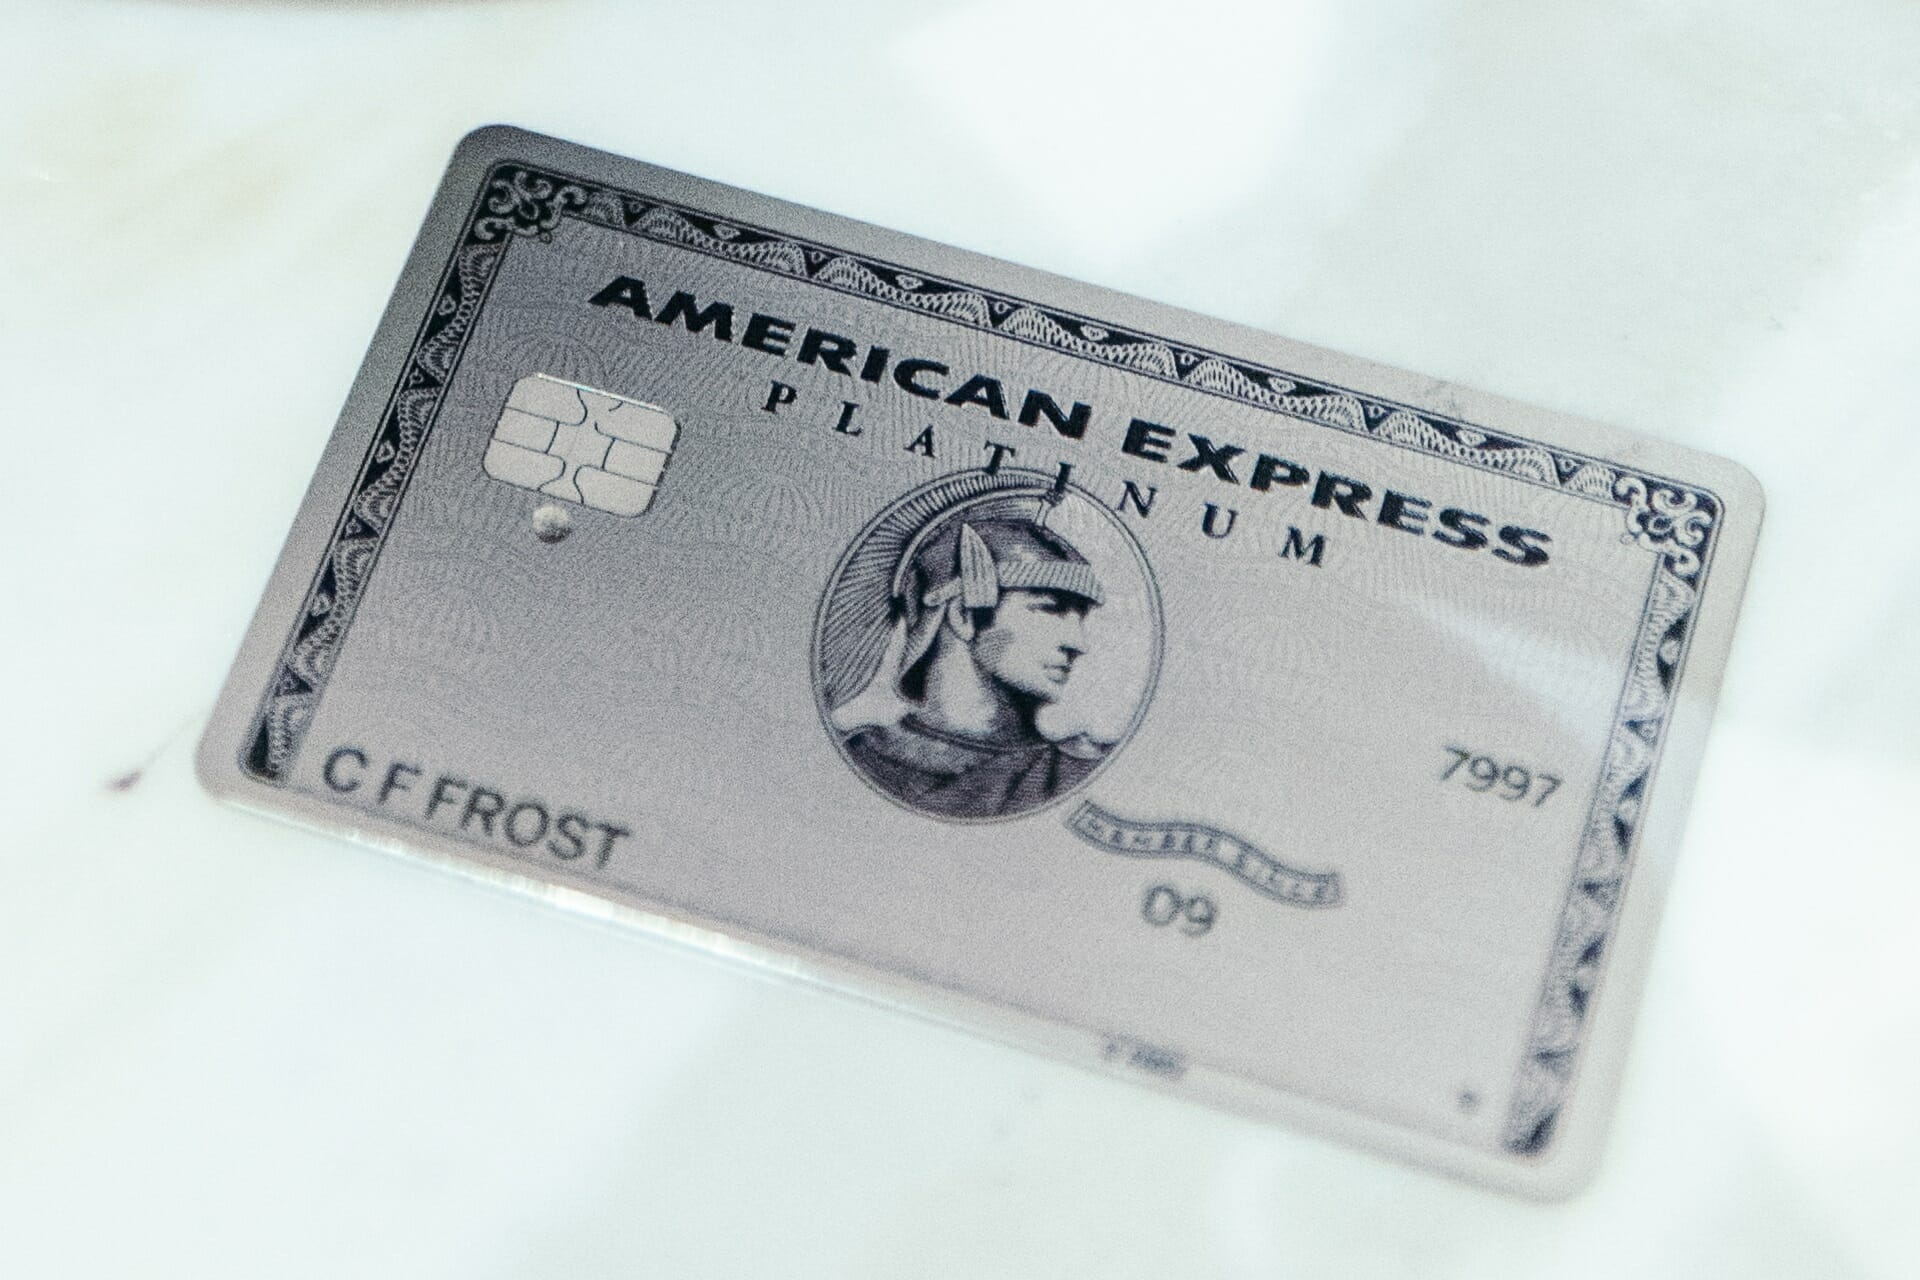 American express extends welcome bonus on credit cards